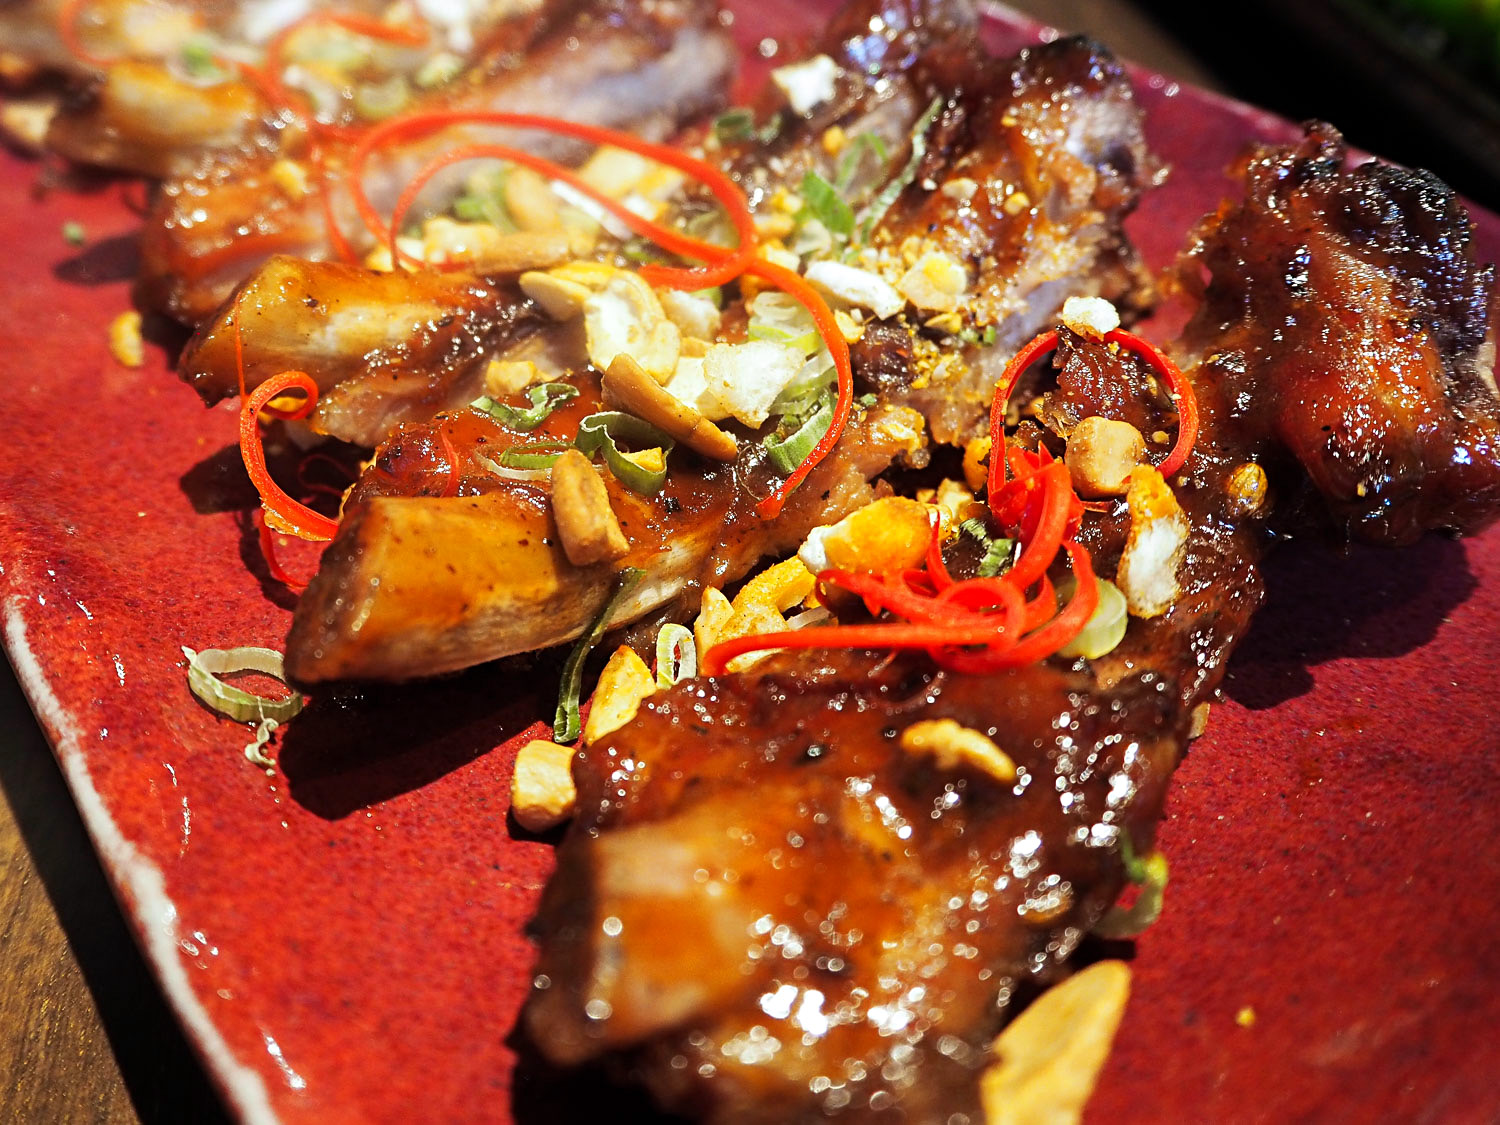 """Bottomless brunch menus: how do you feel about that? I have tried several in London and abroad over the years, but I can't decide whether I like the idea or not.A set menufeaturing signature dishes and bottomless drinks is definitelyanaffordable way to try a new restaurant. One thing I knowfor sure: I love Peruvian cuisine! So I recently asked Mondomulia's guest blogger Adrienne (<a href=""""https://www.instagram.com/fungry.nomad"""">@fungry.nomad</a>) to visitCOYA Mayfair, London's first Peruvian restaurant that opened in 2012, and review their brand new bottomless brunch menu. Read on to discover what she loved (and what she didn't love) about the Mayfair restaurant.  Last month, I had the chance to check out <a href=""""http://www.coyarestaurant.com/mayfair/about"""">COYA Mayfair</a>new bottomless brunch menu with a friend. Coya, one of London's hottest restaurants in the trendy neighbourhood of Mayfair, serves upscale Latin American fare with a contemporary edge.Led by Head Chef Sanjay Dwivedi (previously at high end Indian restaurant Zaika in Kensington), Coya's food marries tradition with refined elegance. For those looking for a swanky party brunch in London complete with a live DJ, Coya's new weekend brunch offering won't disappoint. Before being seated at our table, we had the pleasure of trying some of Coya's signature cocktails from their Pisco Lounge bar. The bar is decorated with a gorgeous display of fresh produce, transporting us from London to Peru. We tried the <em>Pisco Royale</em> cocktail. Priced at £15, it should not have surprised us that it would be topped with gold flakes. While not only visually stunning, the cocktail was in fact delicious - not too sweet and with just the right touch of citrus, a great way to whet our appetites before a decadent brunch. <img class=""""alignnone wp-image-16252"""" title=""""Peruvian Saturday Brunch with Bottomless Pisco Sour Drinks at COYA Mayfair in London"""" src=""""http://mondomulia.com/wp-content/uploads/2017/04/Peruvian-Brunch-C"""